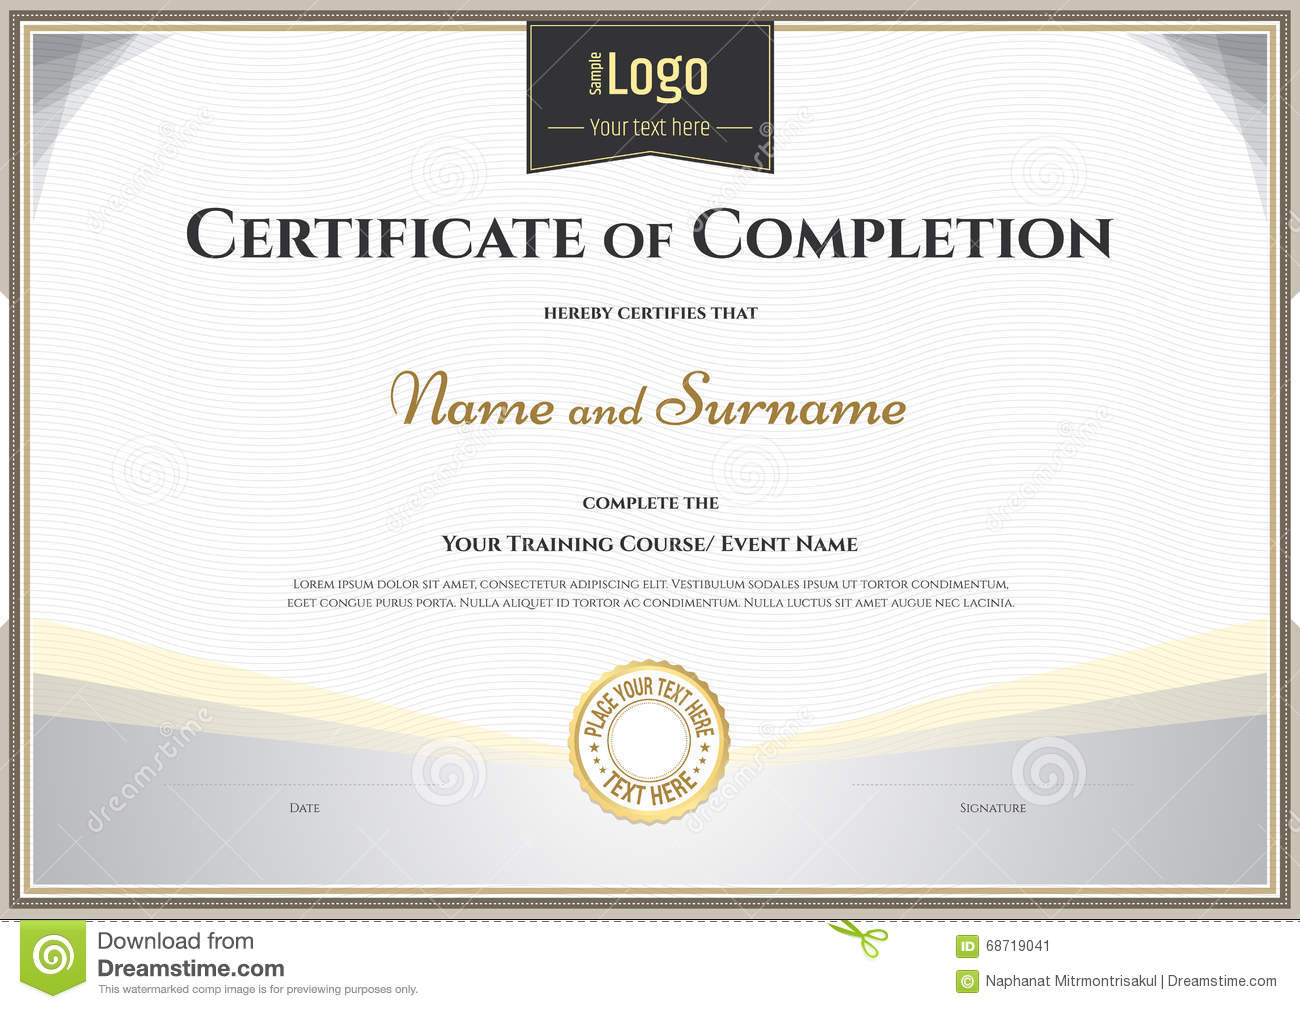 Certificate of completion template in vector for achievement gra certificate of completion template in vector for achievement gra xflitez Images